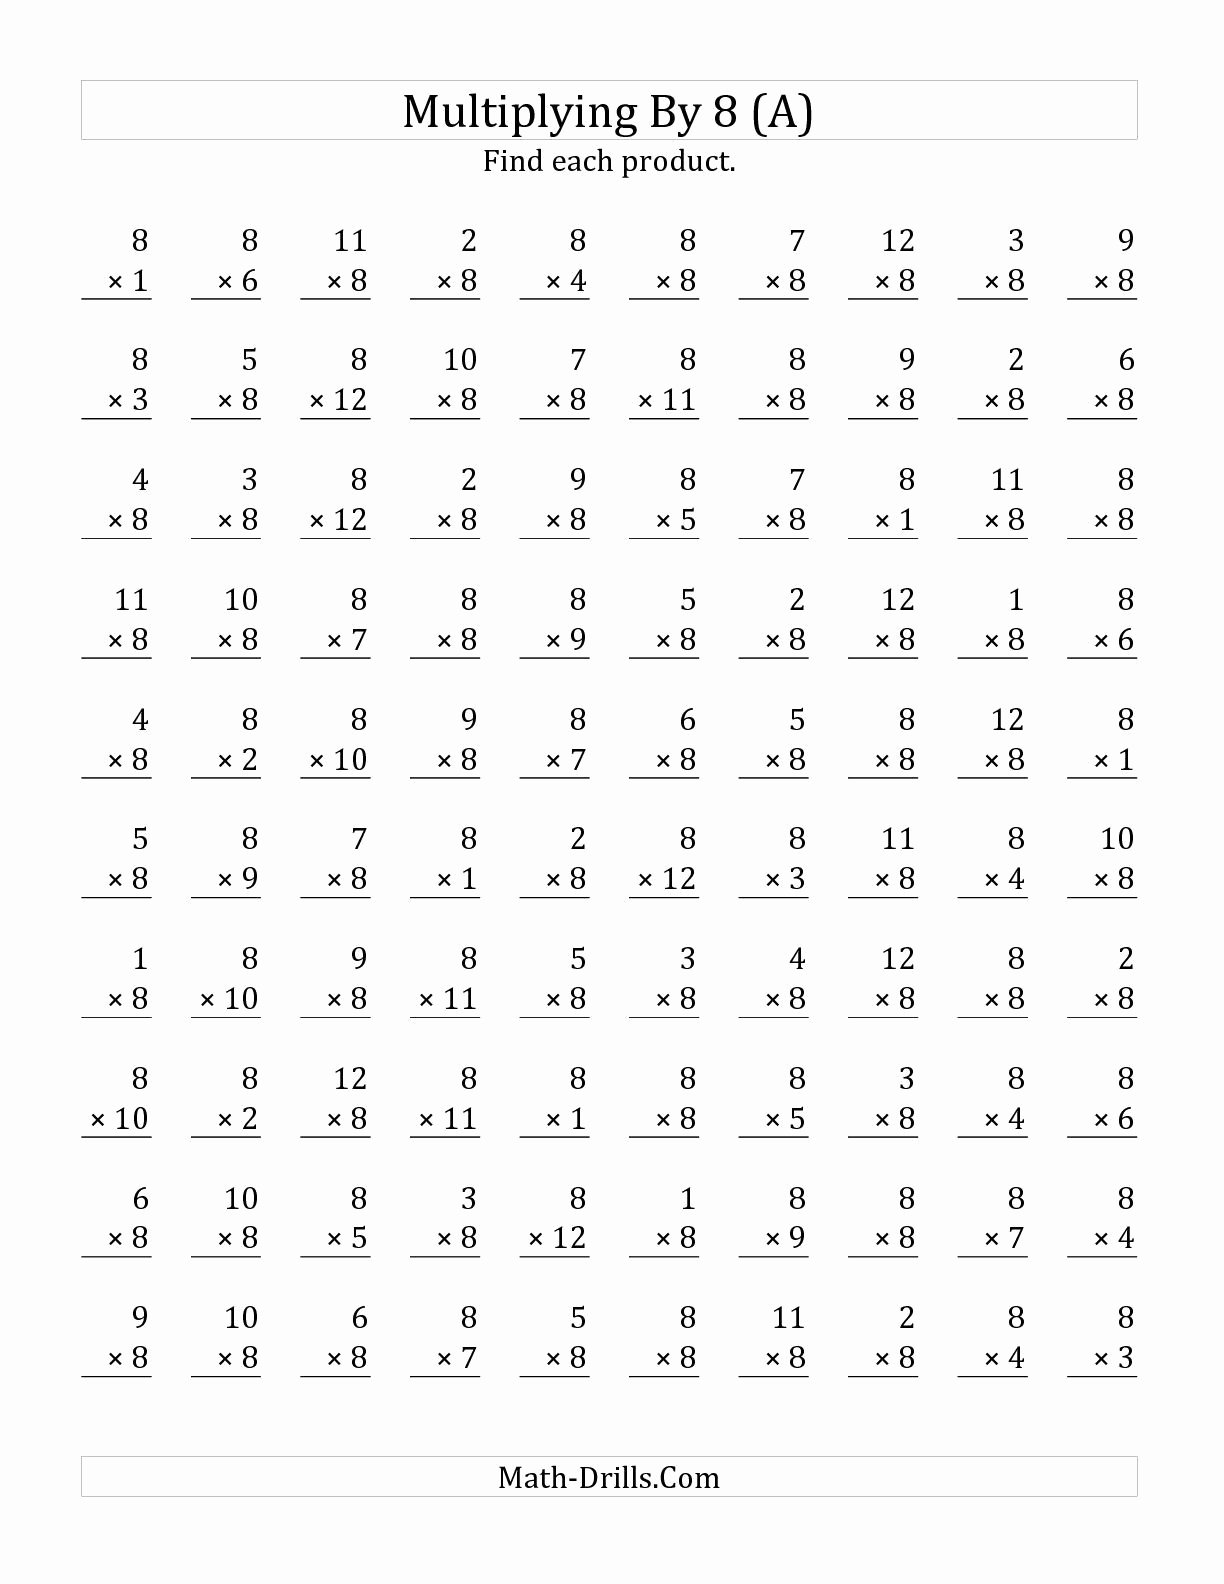 Multiplication Worksheets to 12 Lovely the Multiplying 1 to 12 by 8 A Math Worksheet From the